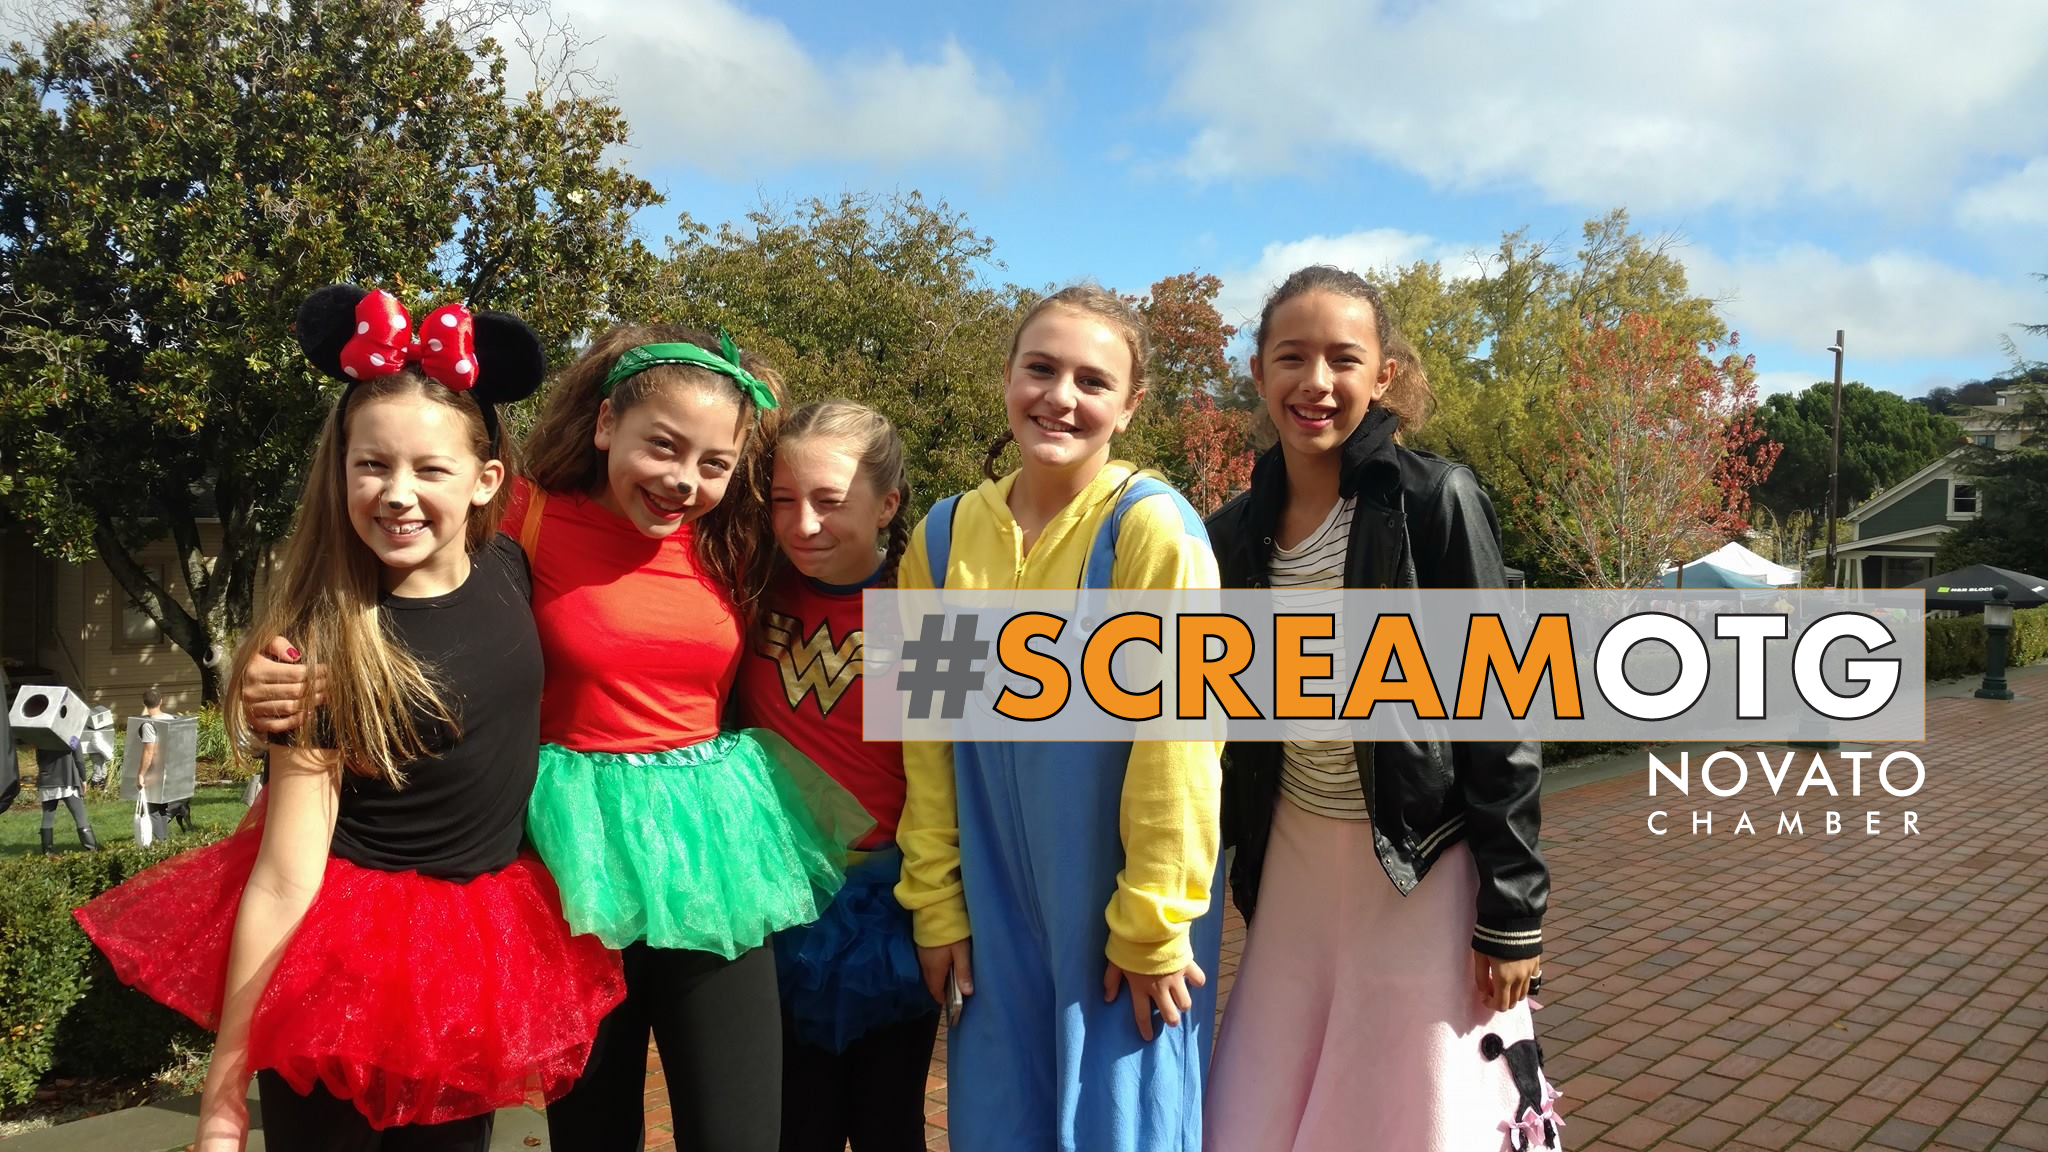 Novato Chamber Scream on the Green Halloween haunted house costume teens preteen novato north bay petaluma novato San rafael marin sonoma DNBA downtown City of Novato